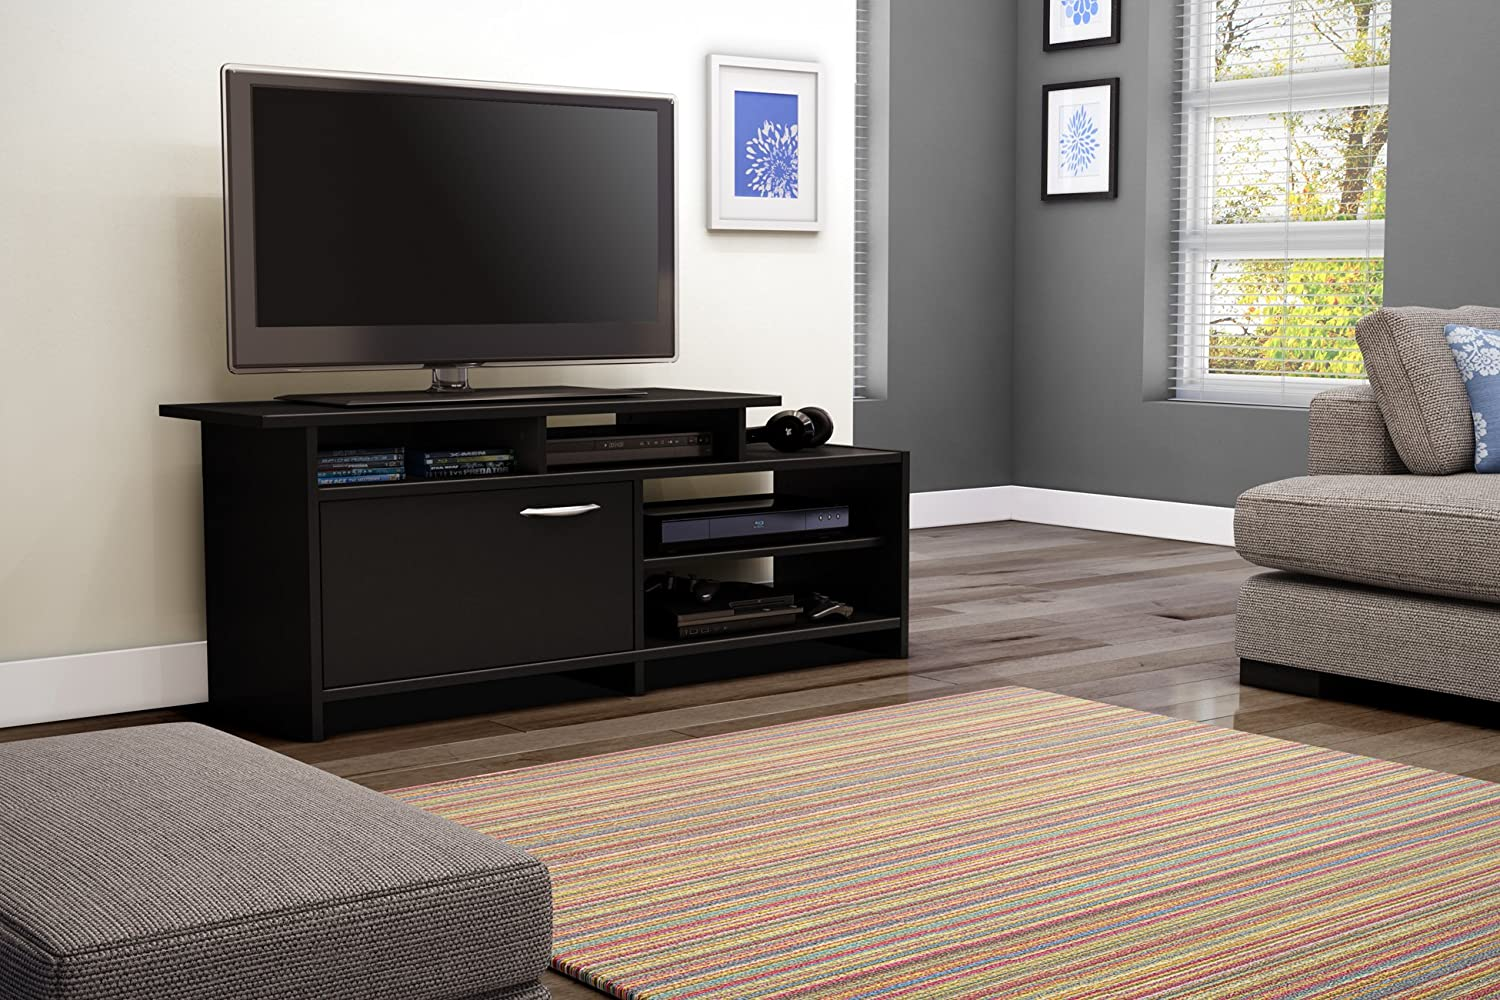 "Amazon.com: Step One - TV Stand - Fits TVs Up To 42"" - Pure Black ..."